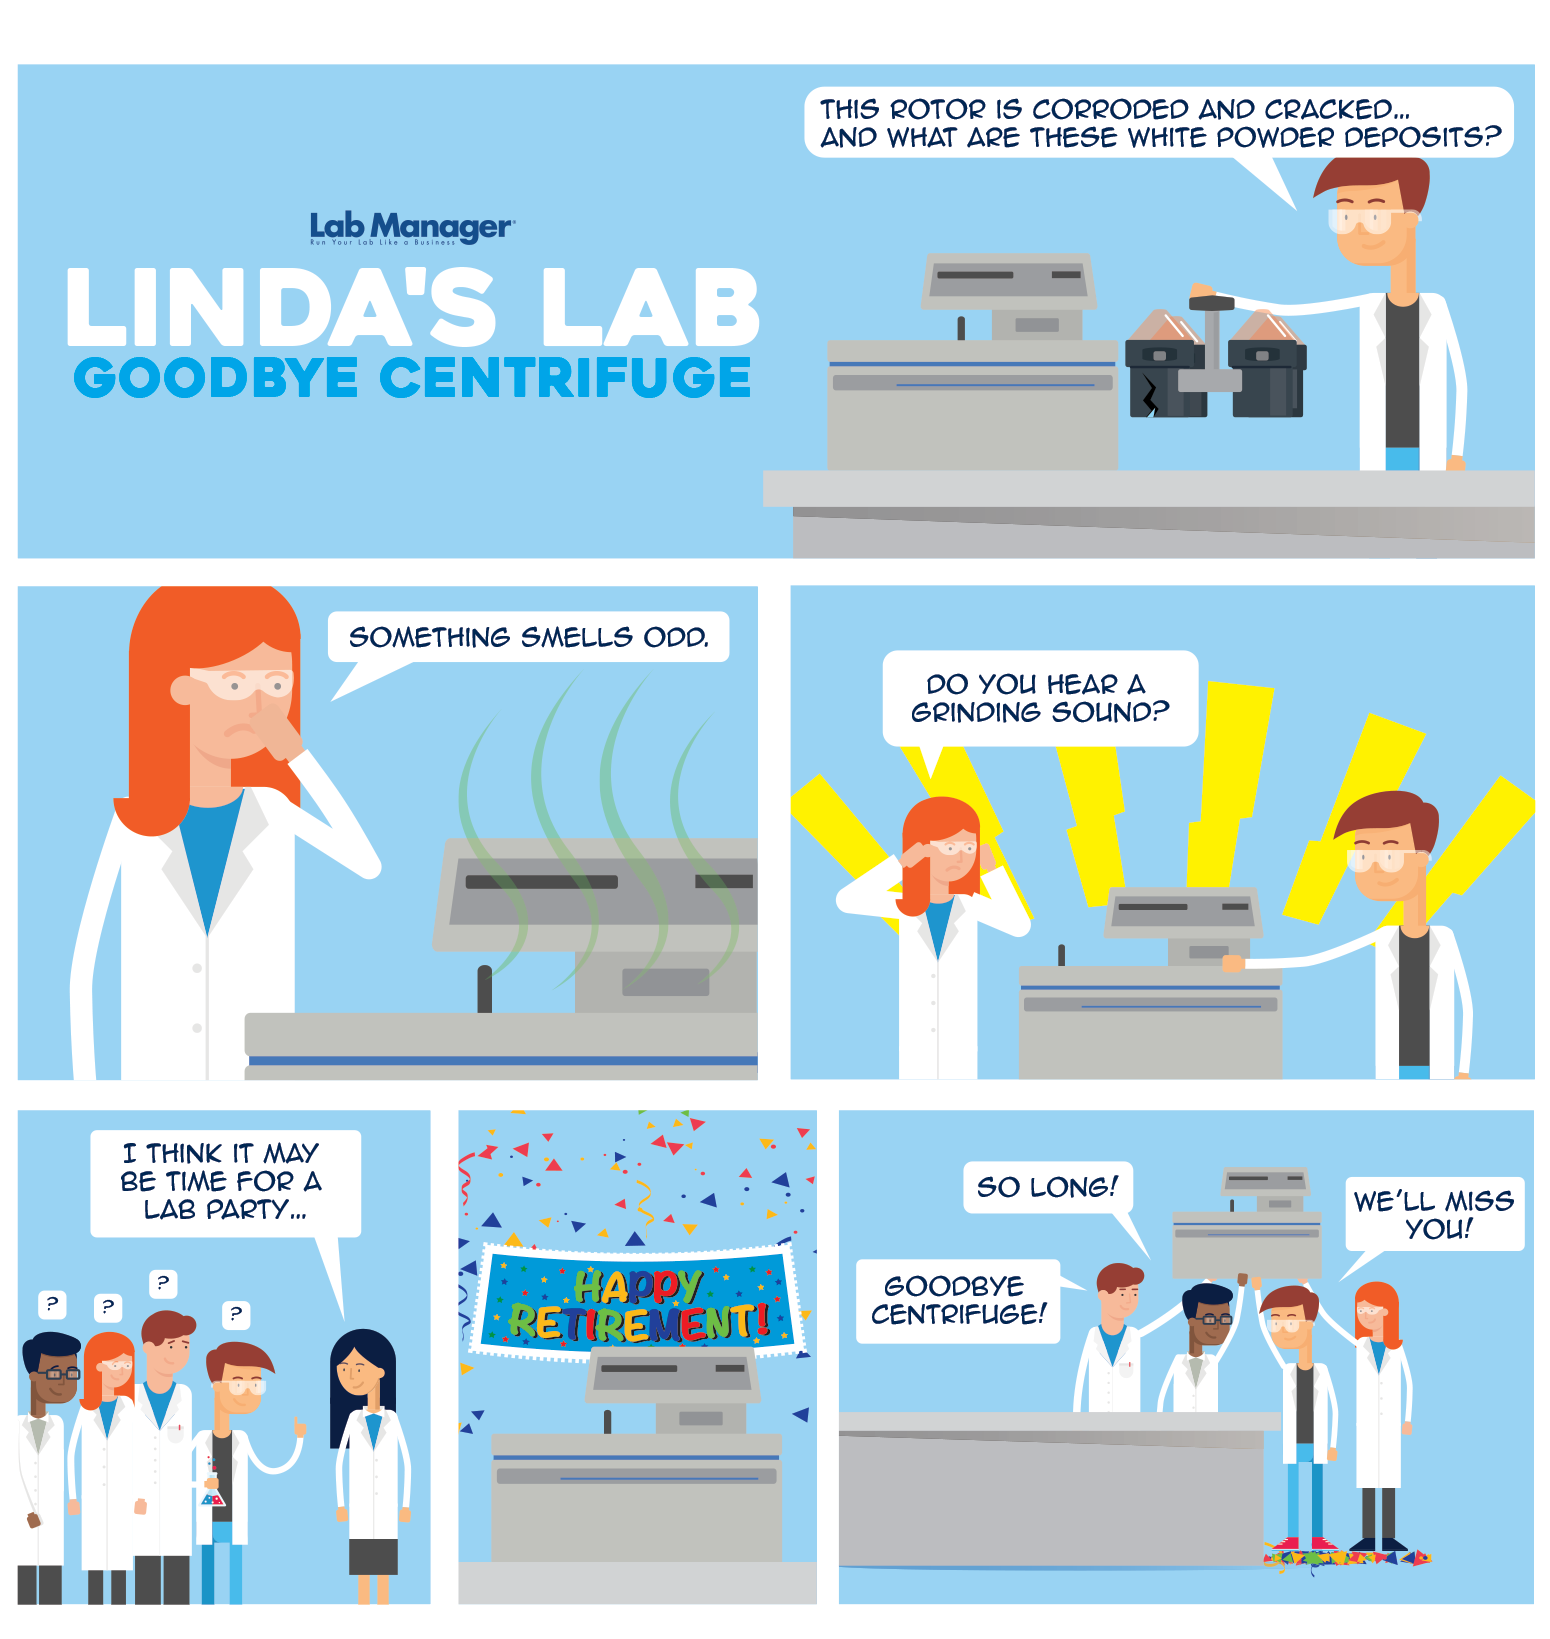 Linda's Lab - Goodbye Centrifuge